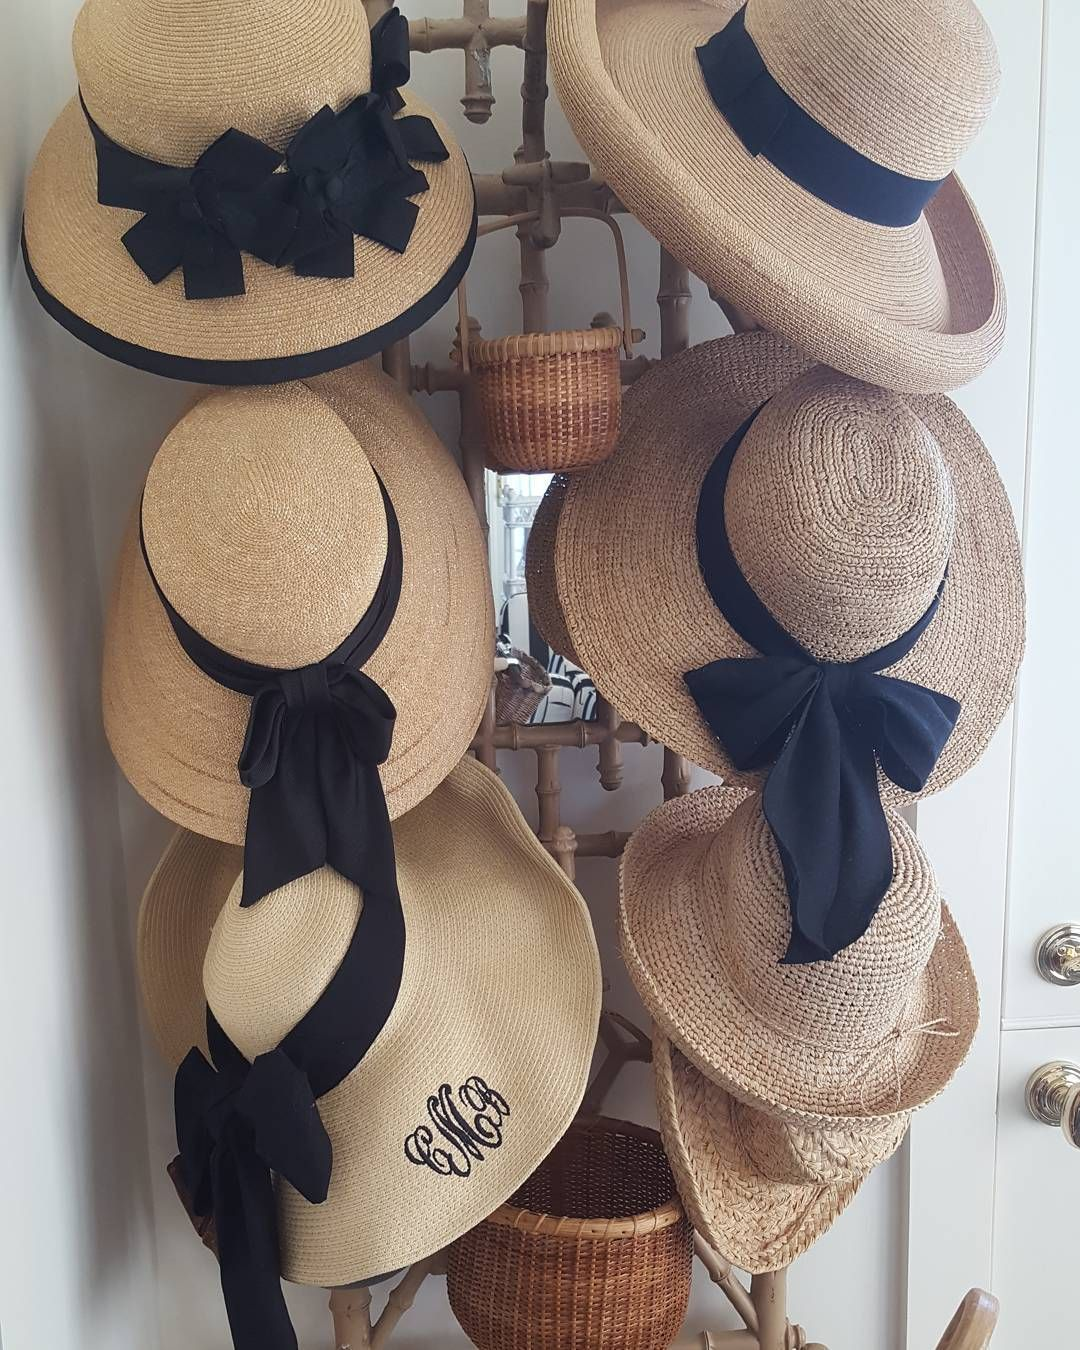 "Cove Carpet One | New Jersey on Instagram: ""#summerhats ������ # Mantoloking Can't wait for summer..���"""